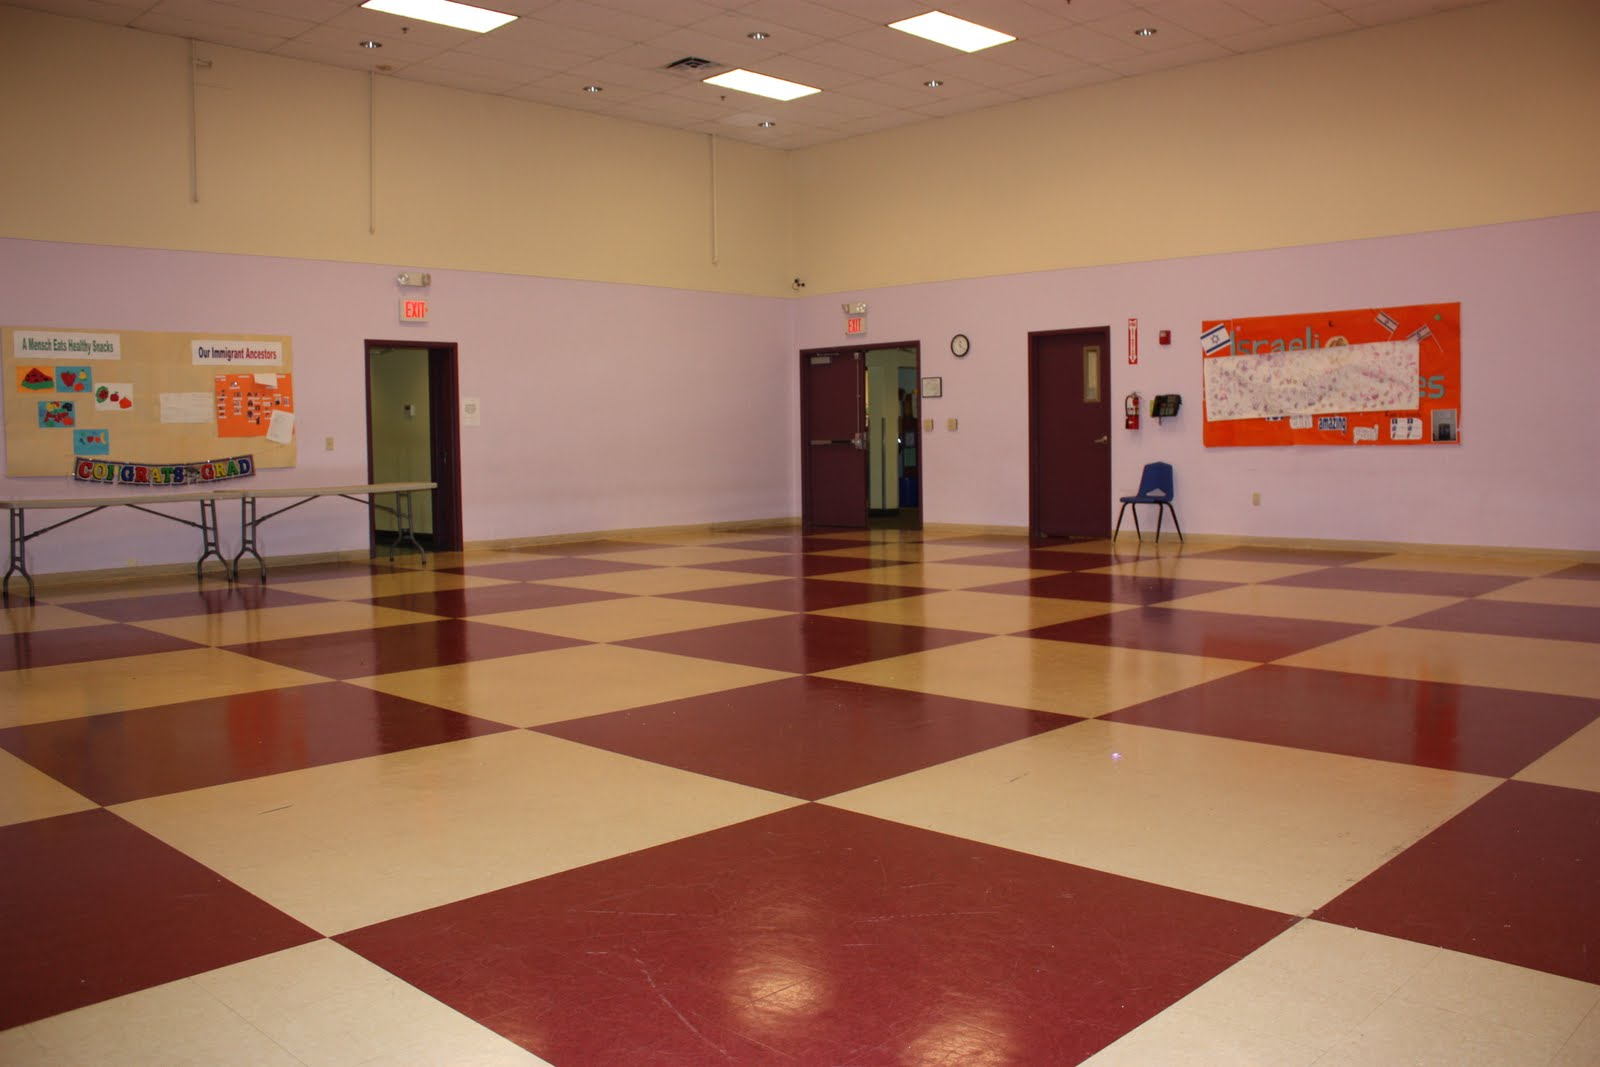 Naeyc Classroom Design ~ The boroughs review positively best preschool